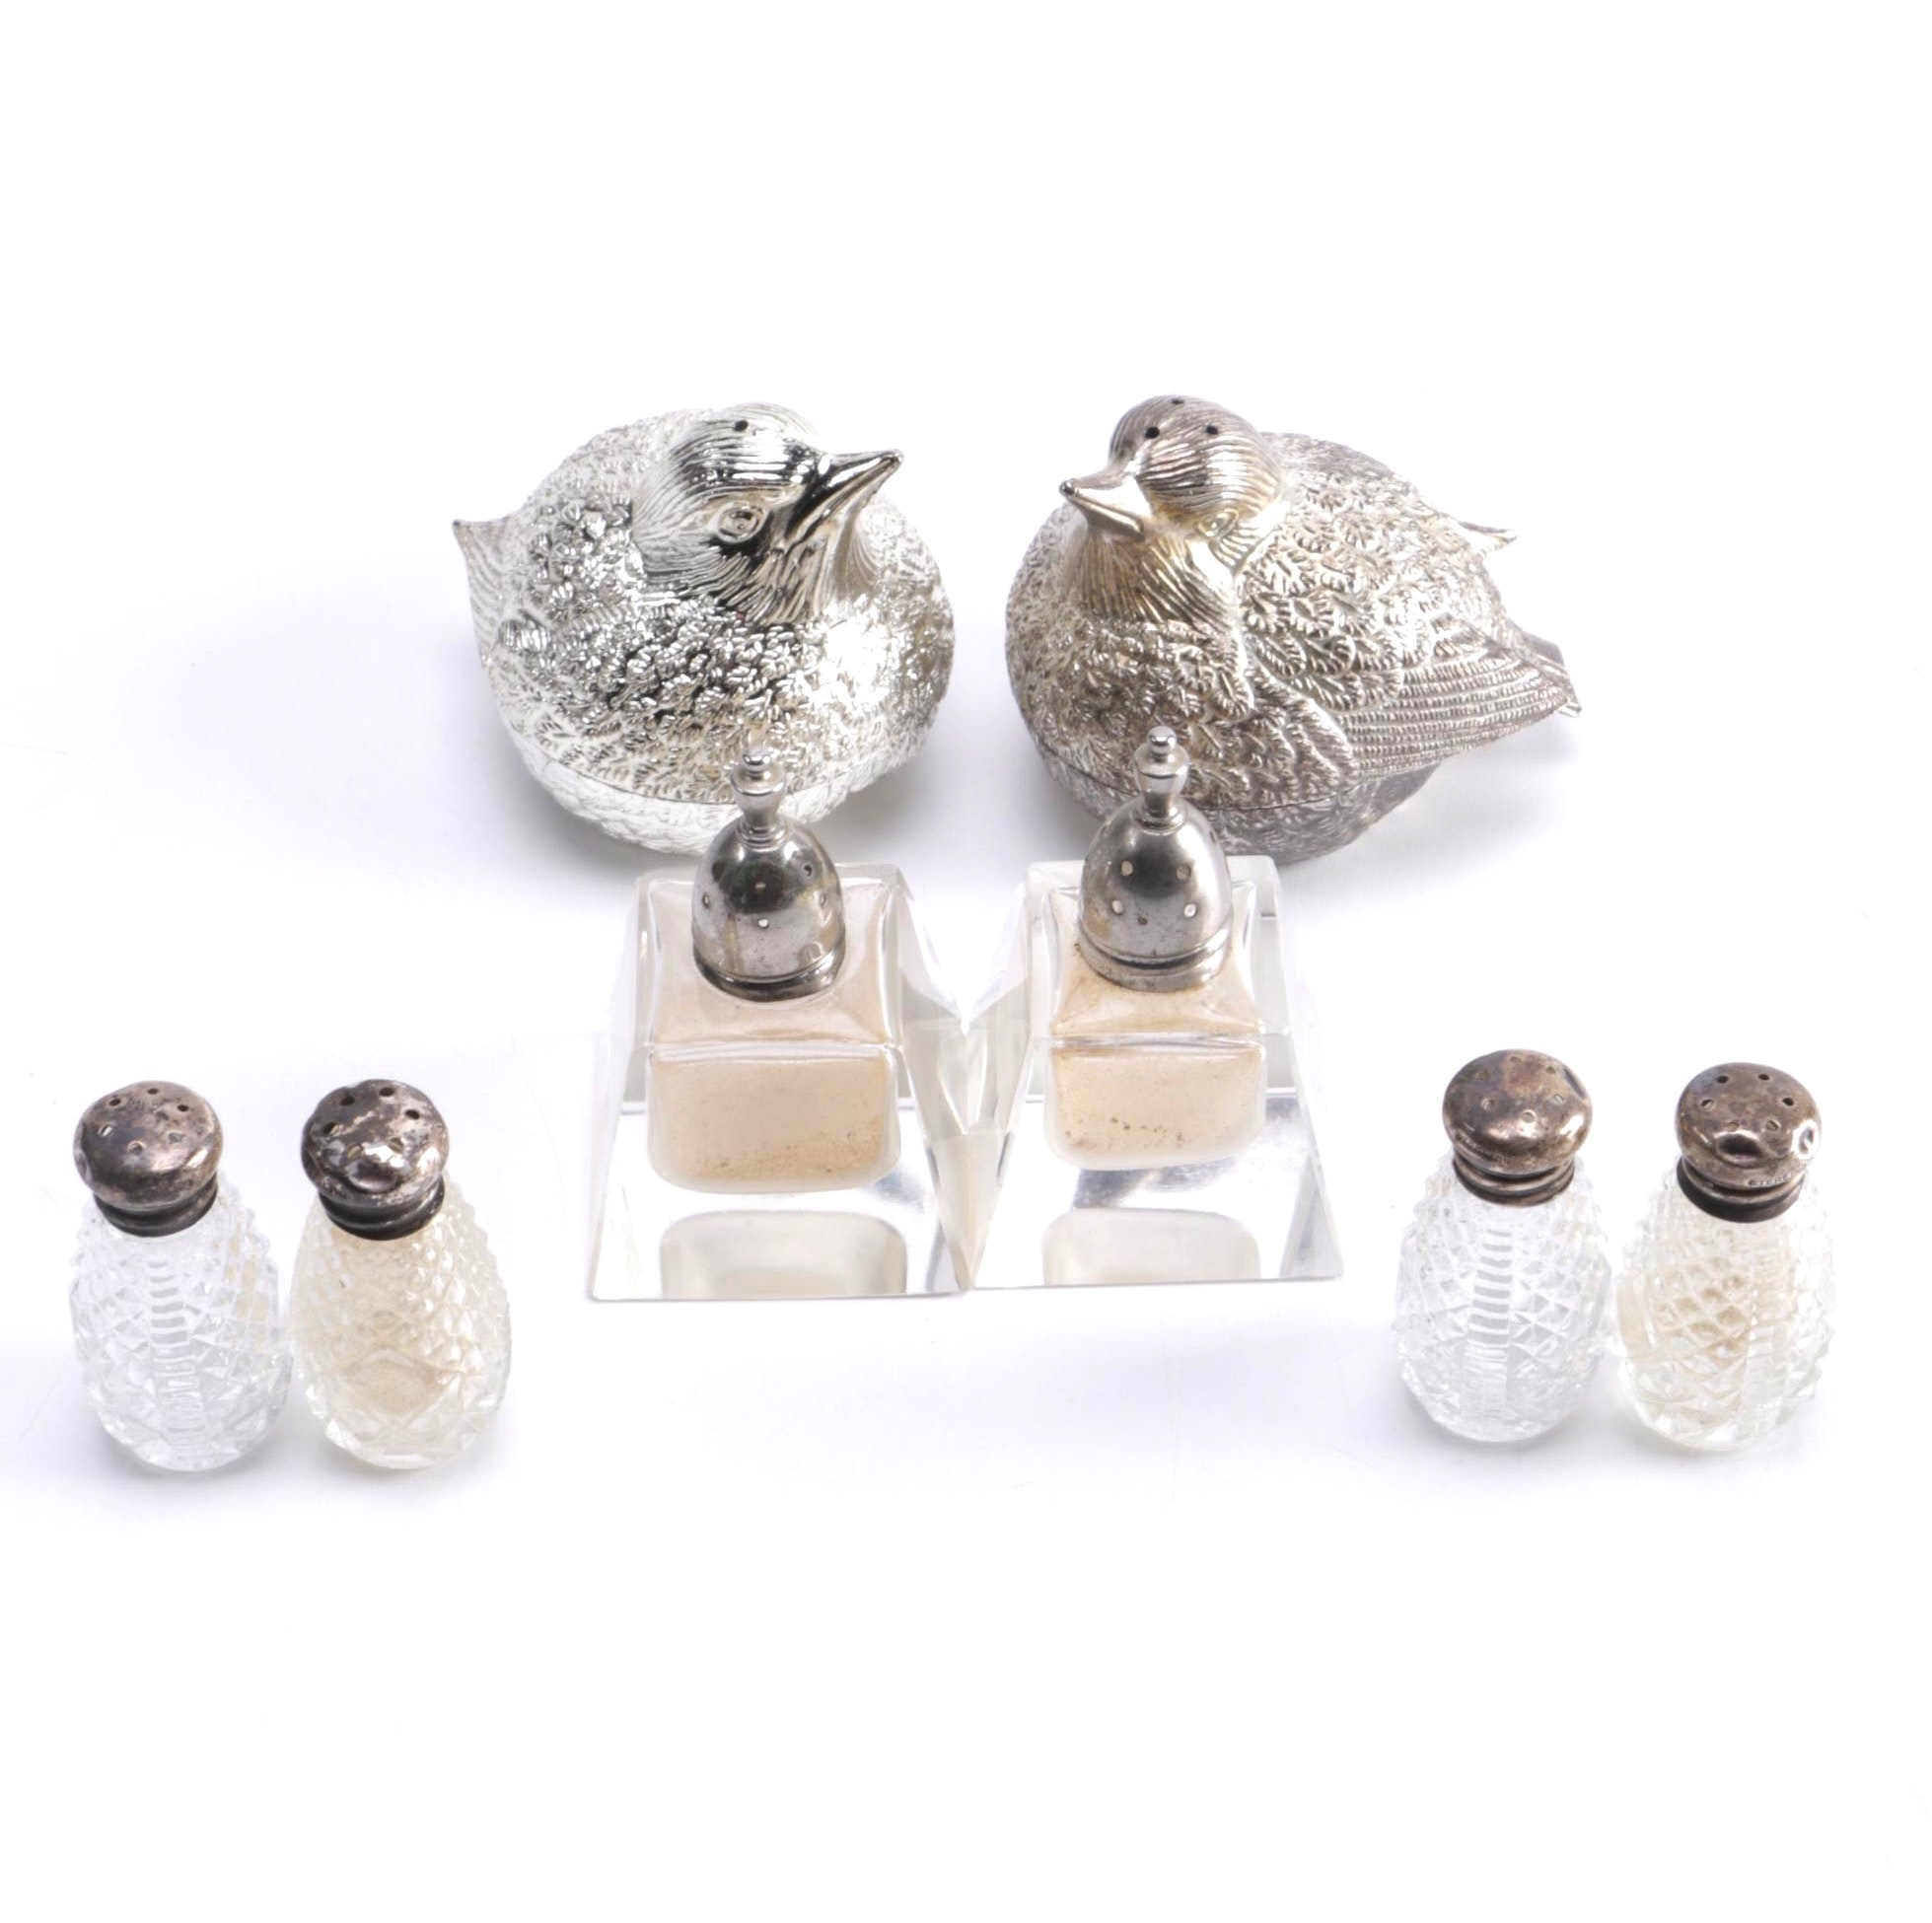 Salt and Pepper Shakers With Sterling Silver Caps